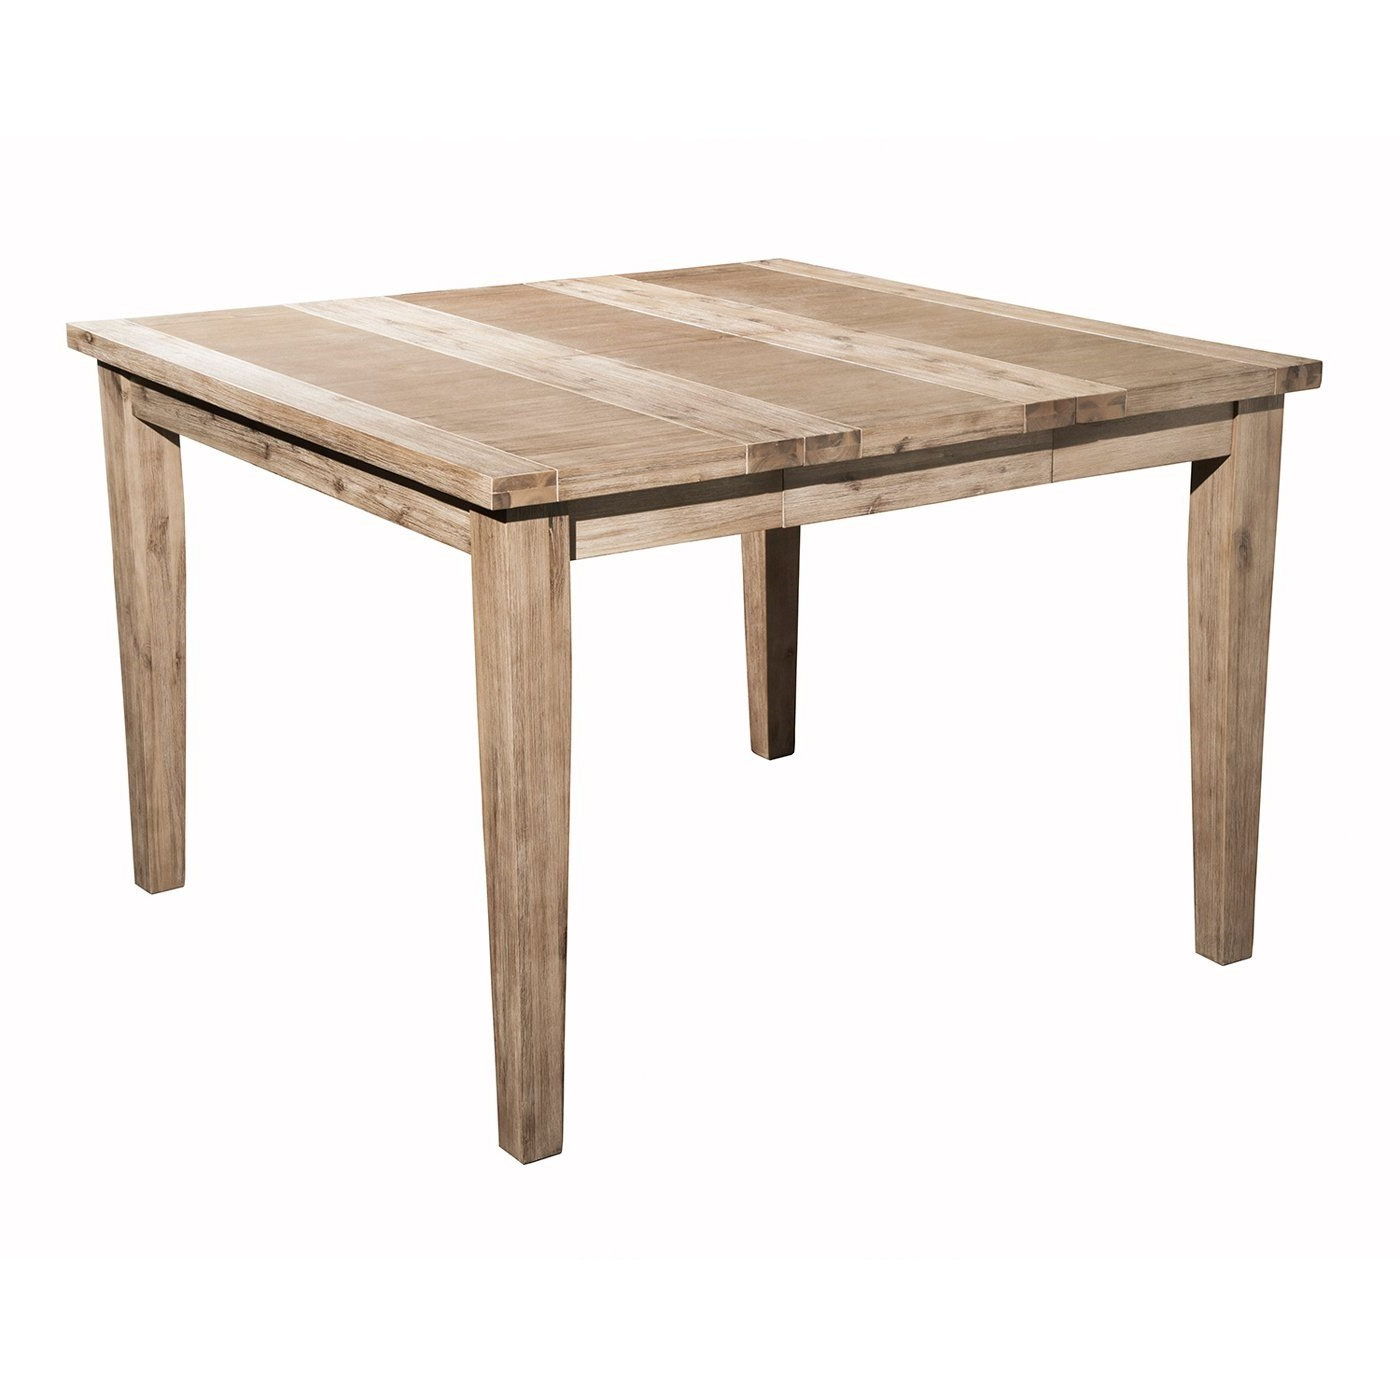 Torrin Round Cocktail Tables With Regard To Most Recent Highland Dunes Centralia Dining Table & Reviews (View 12 of 20)